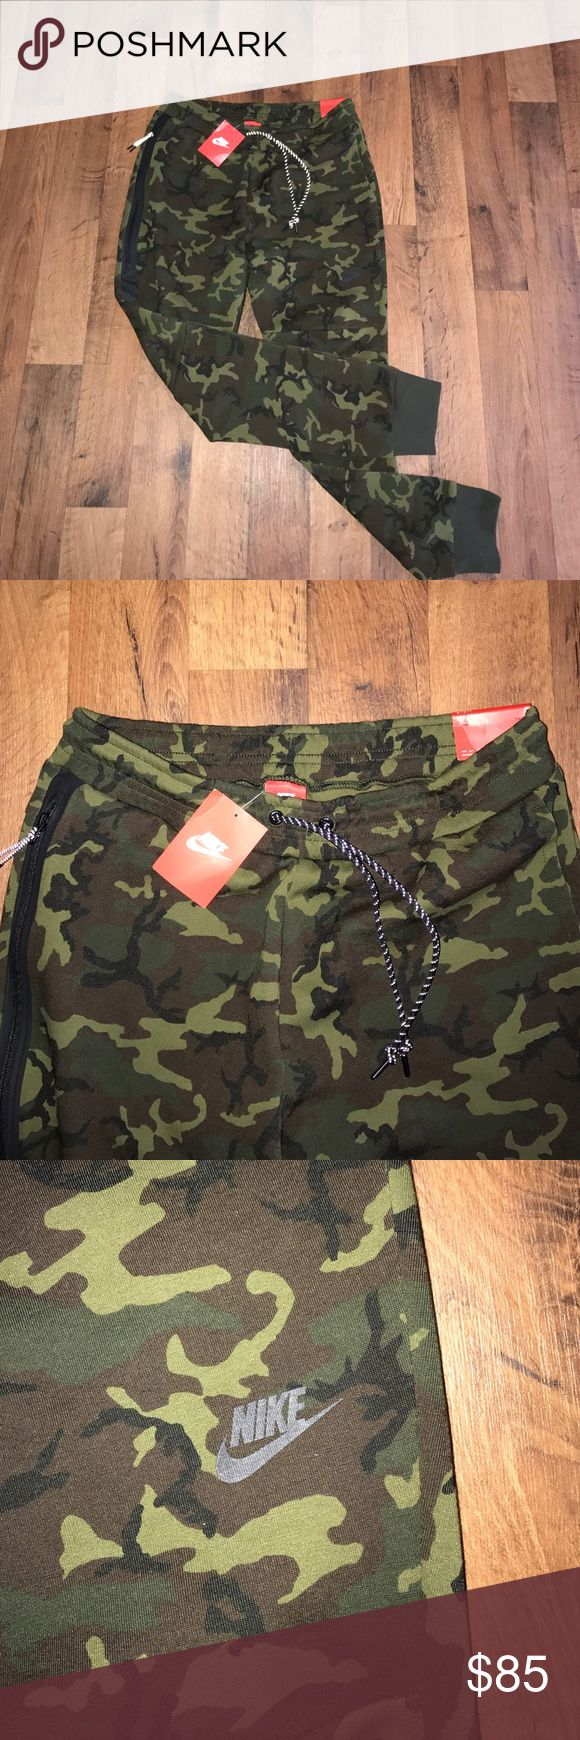 New Nike Tech Fleece Camo Joggers Jogger Pants Available in size Small or Large Nike Pants Sweatpants & Joggers